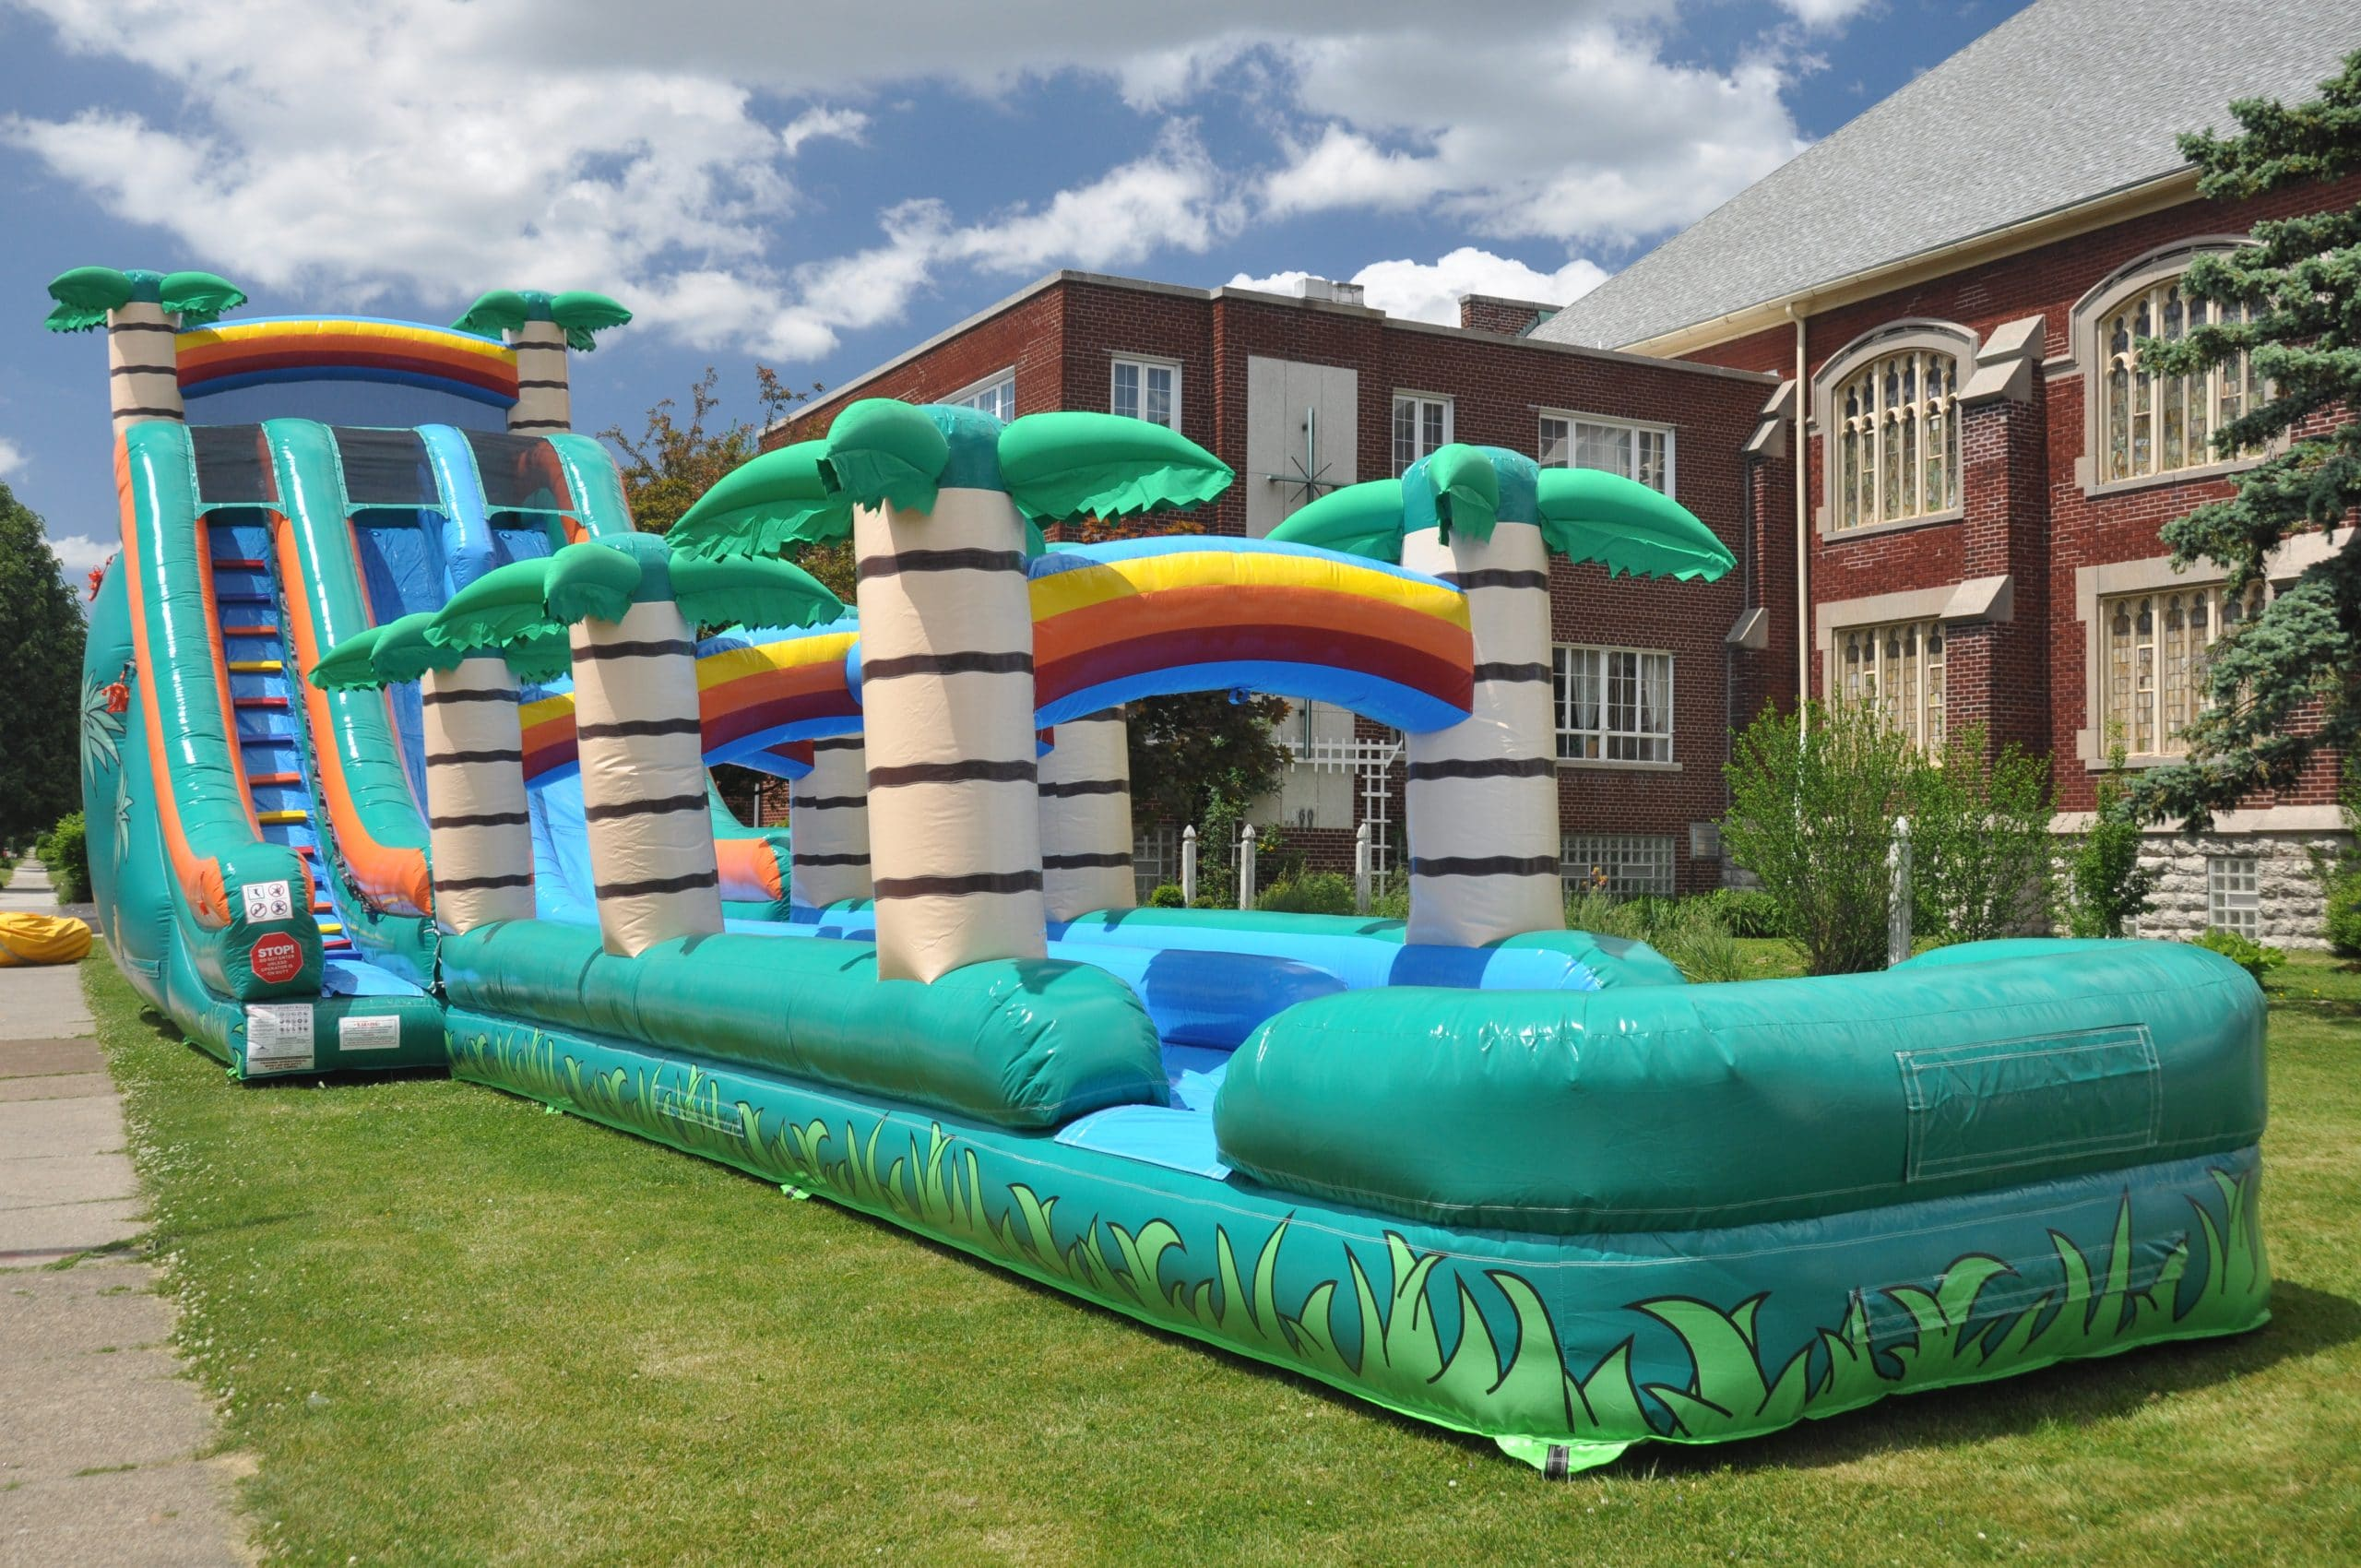 23ft tall tropical slip slide with pool